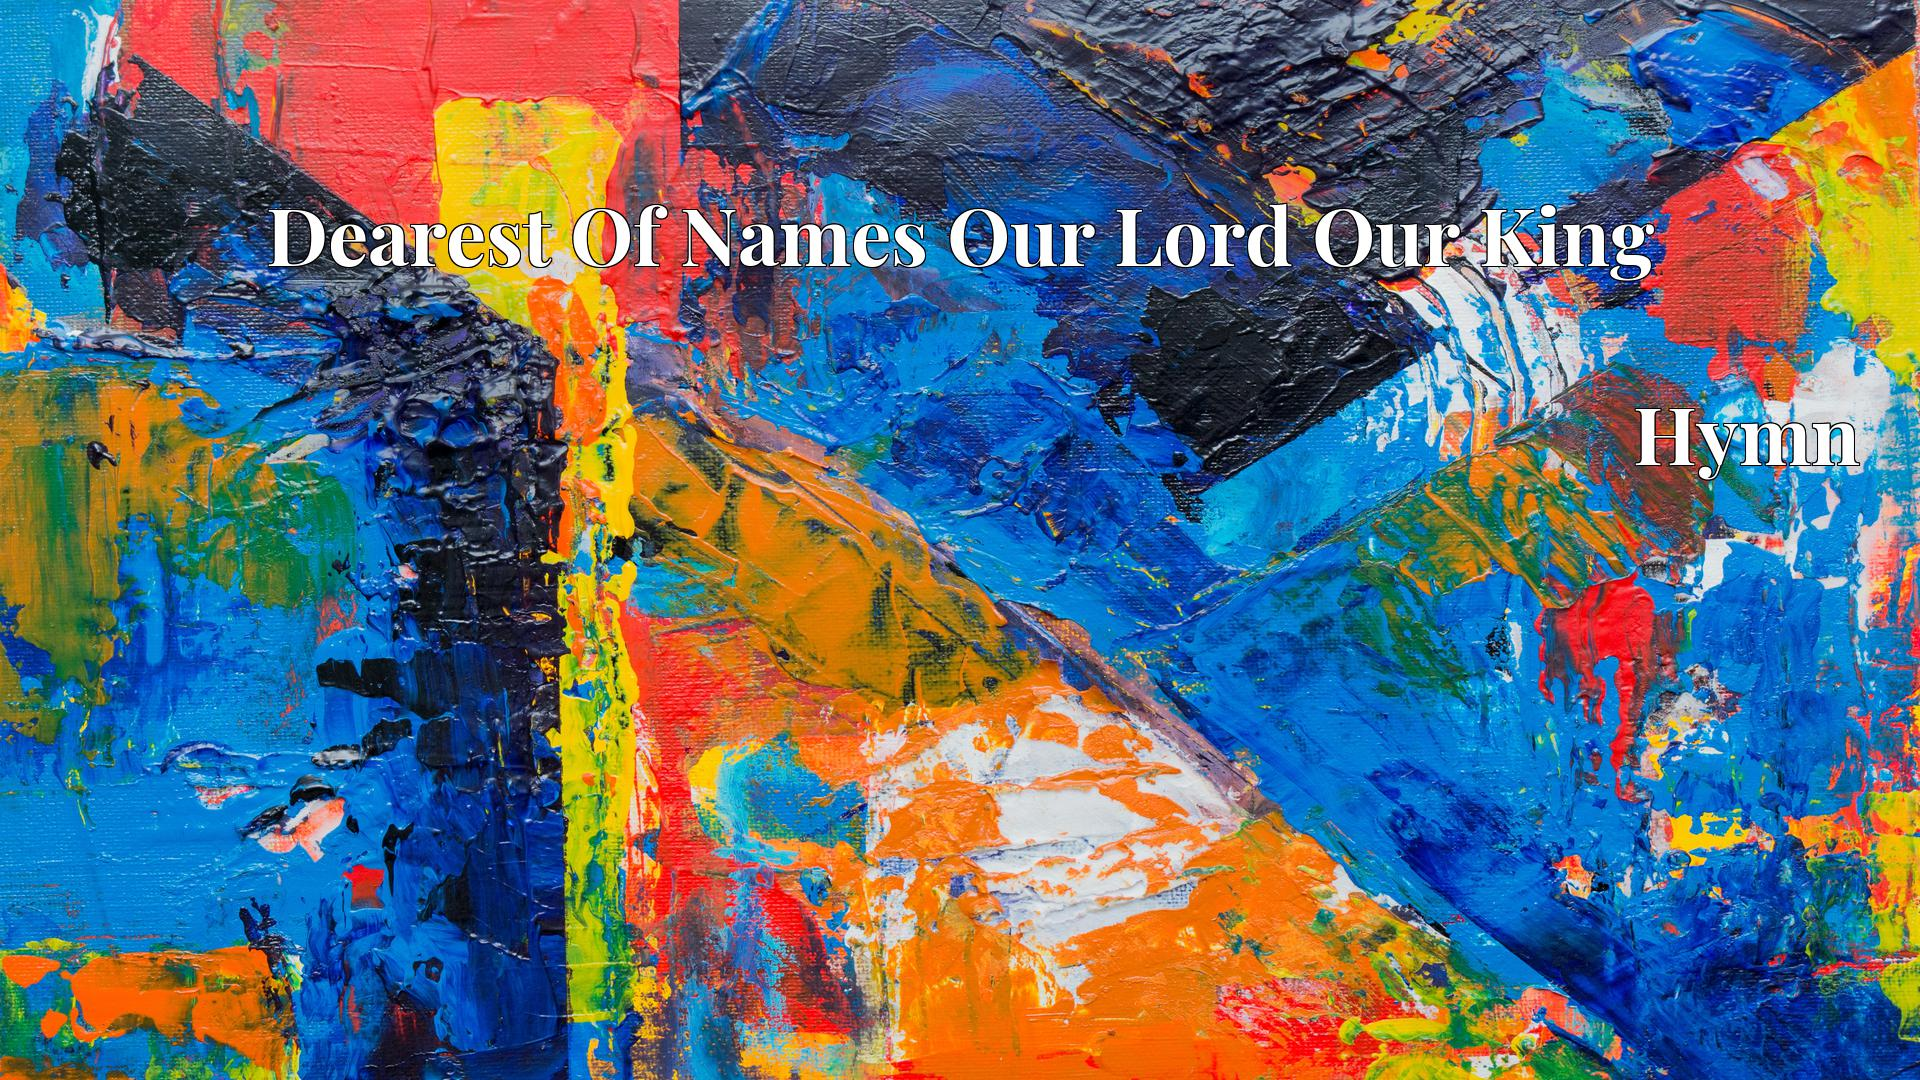 Dearest Of Names Our Lord Our King - Hymn